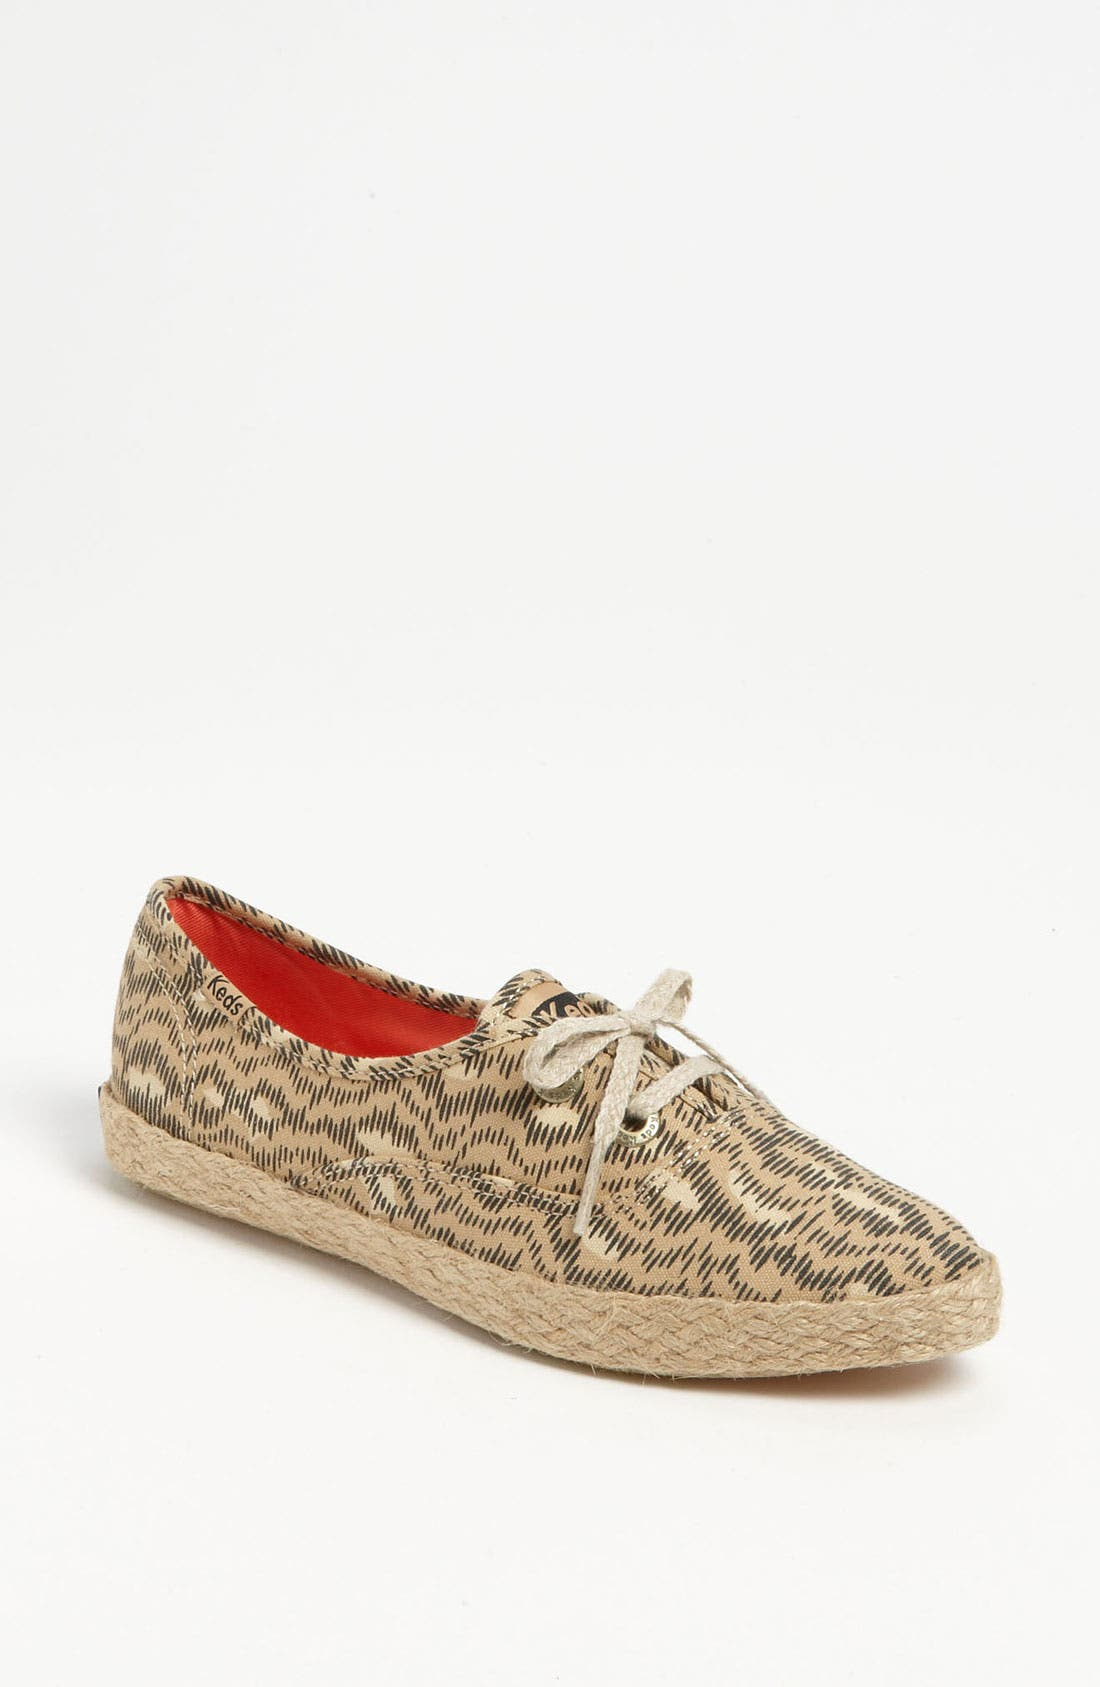 Main Image - Keds® 'Pointer Animal' Jute Trim Sneaker (Women)